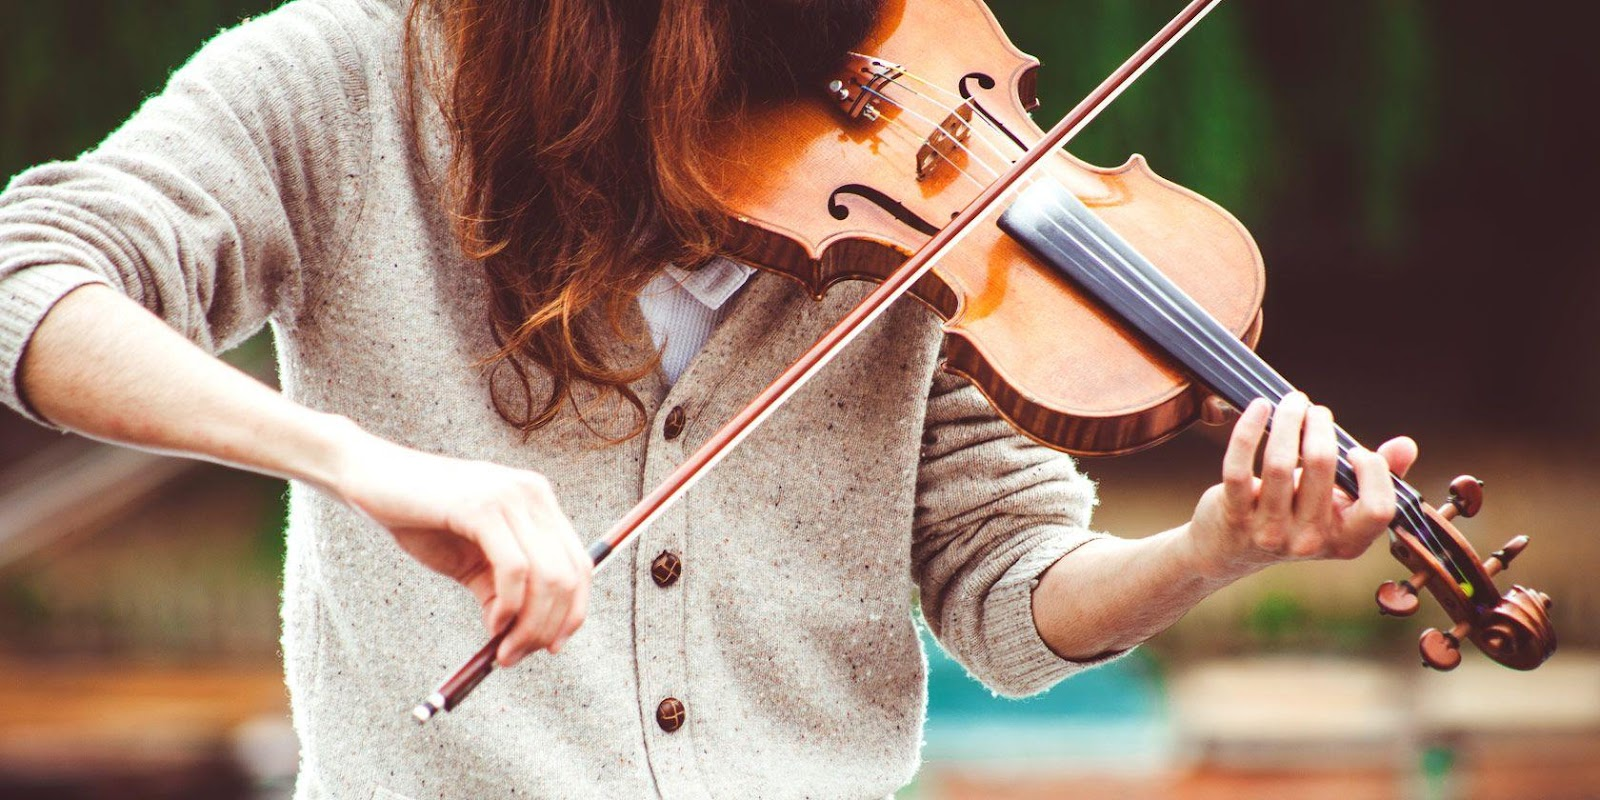 Learn to Play the Violin for Free With These 8 Tutorials